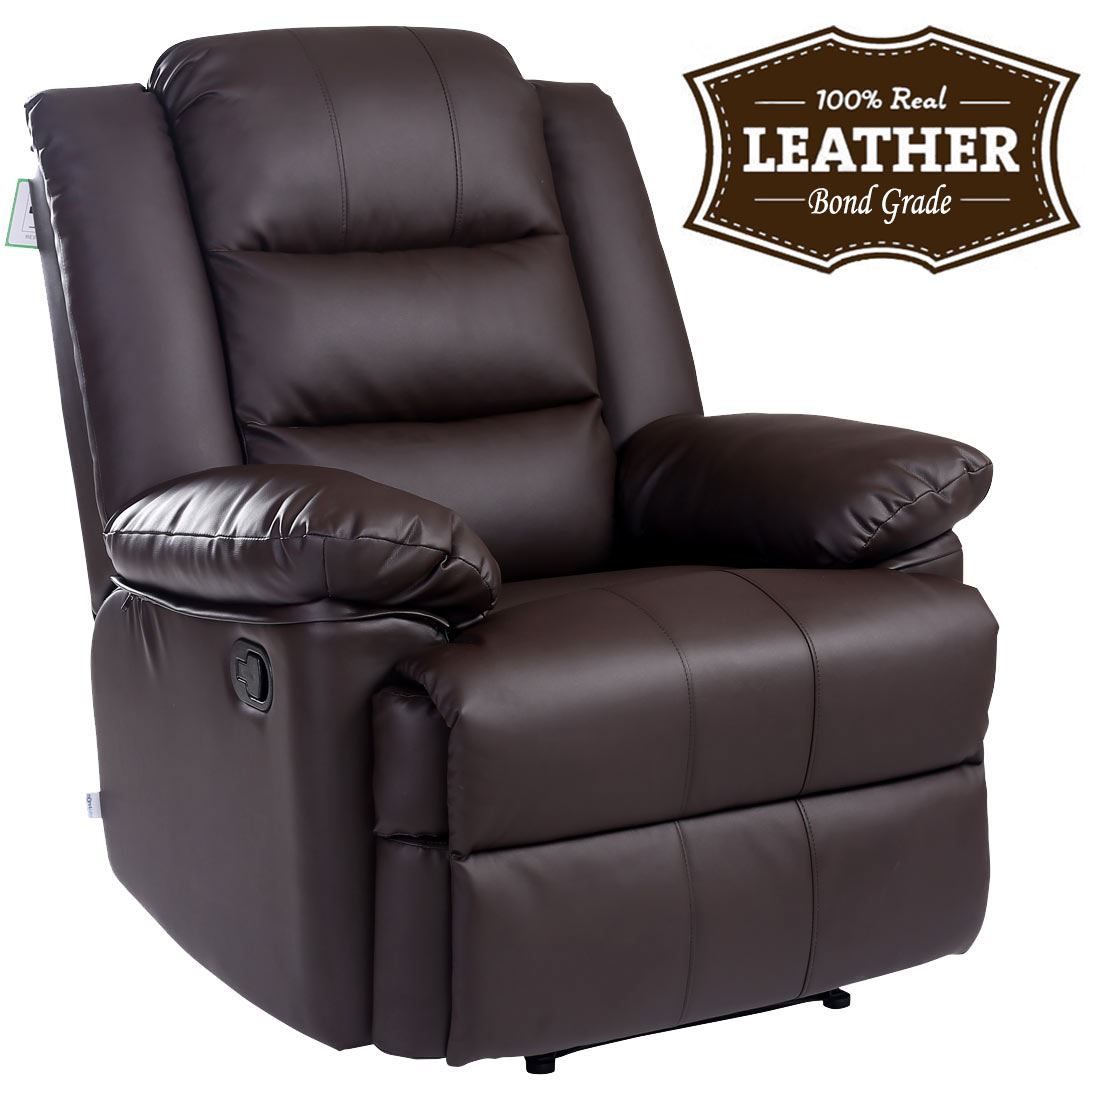 pdx reviews barcalounger wayfair longhorn furniture recliner leather